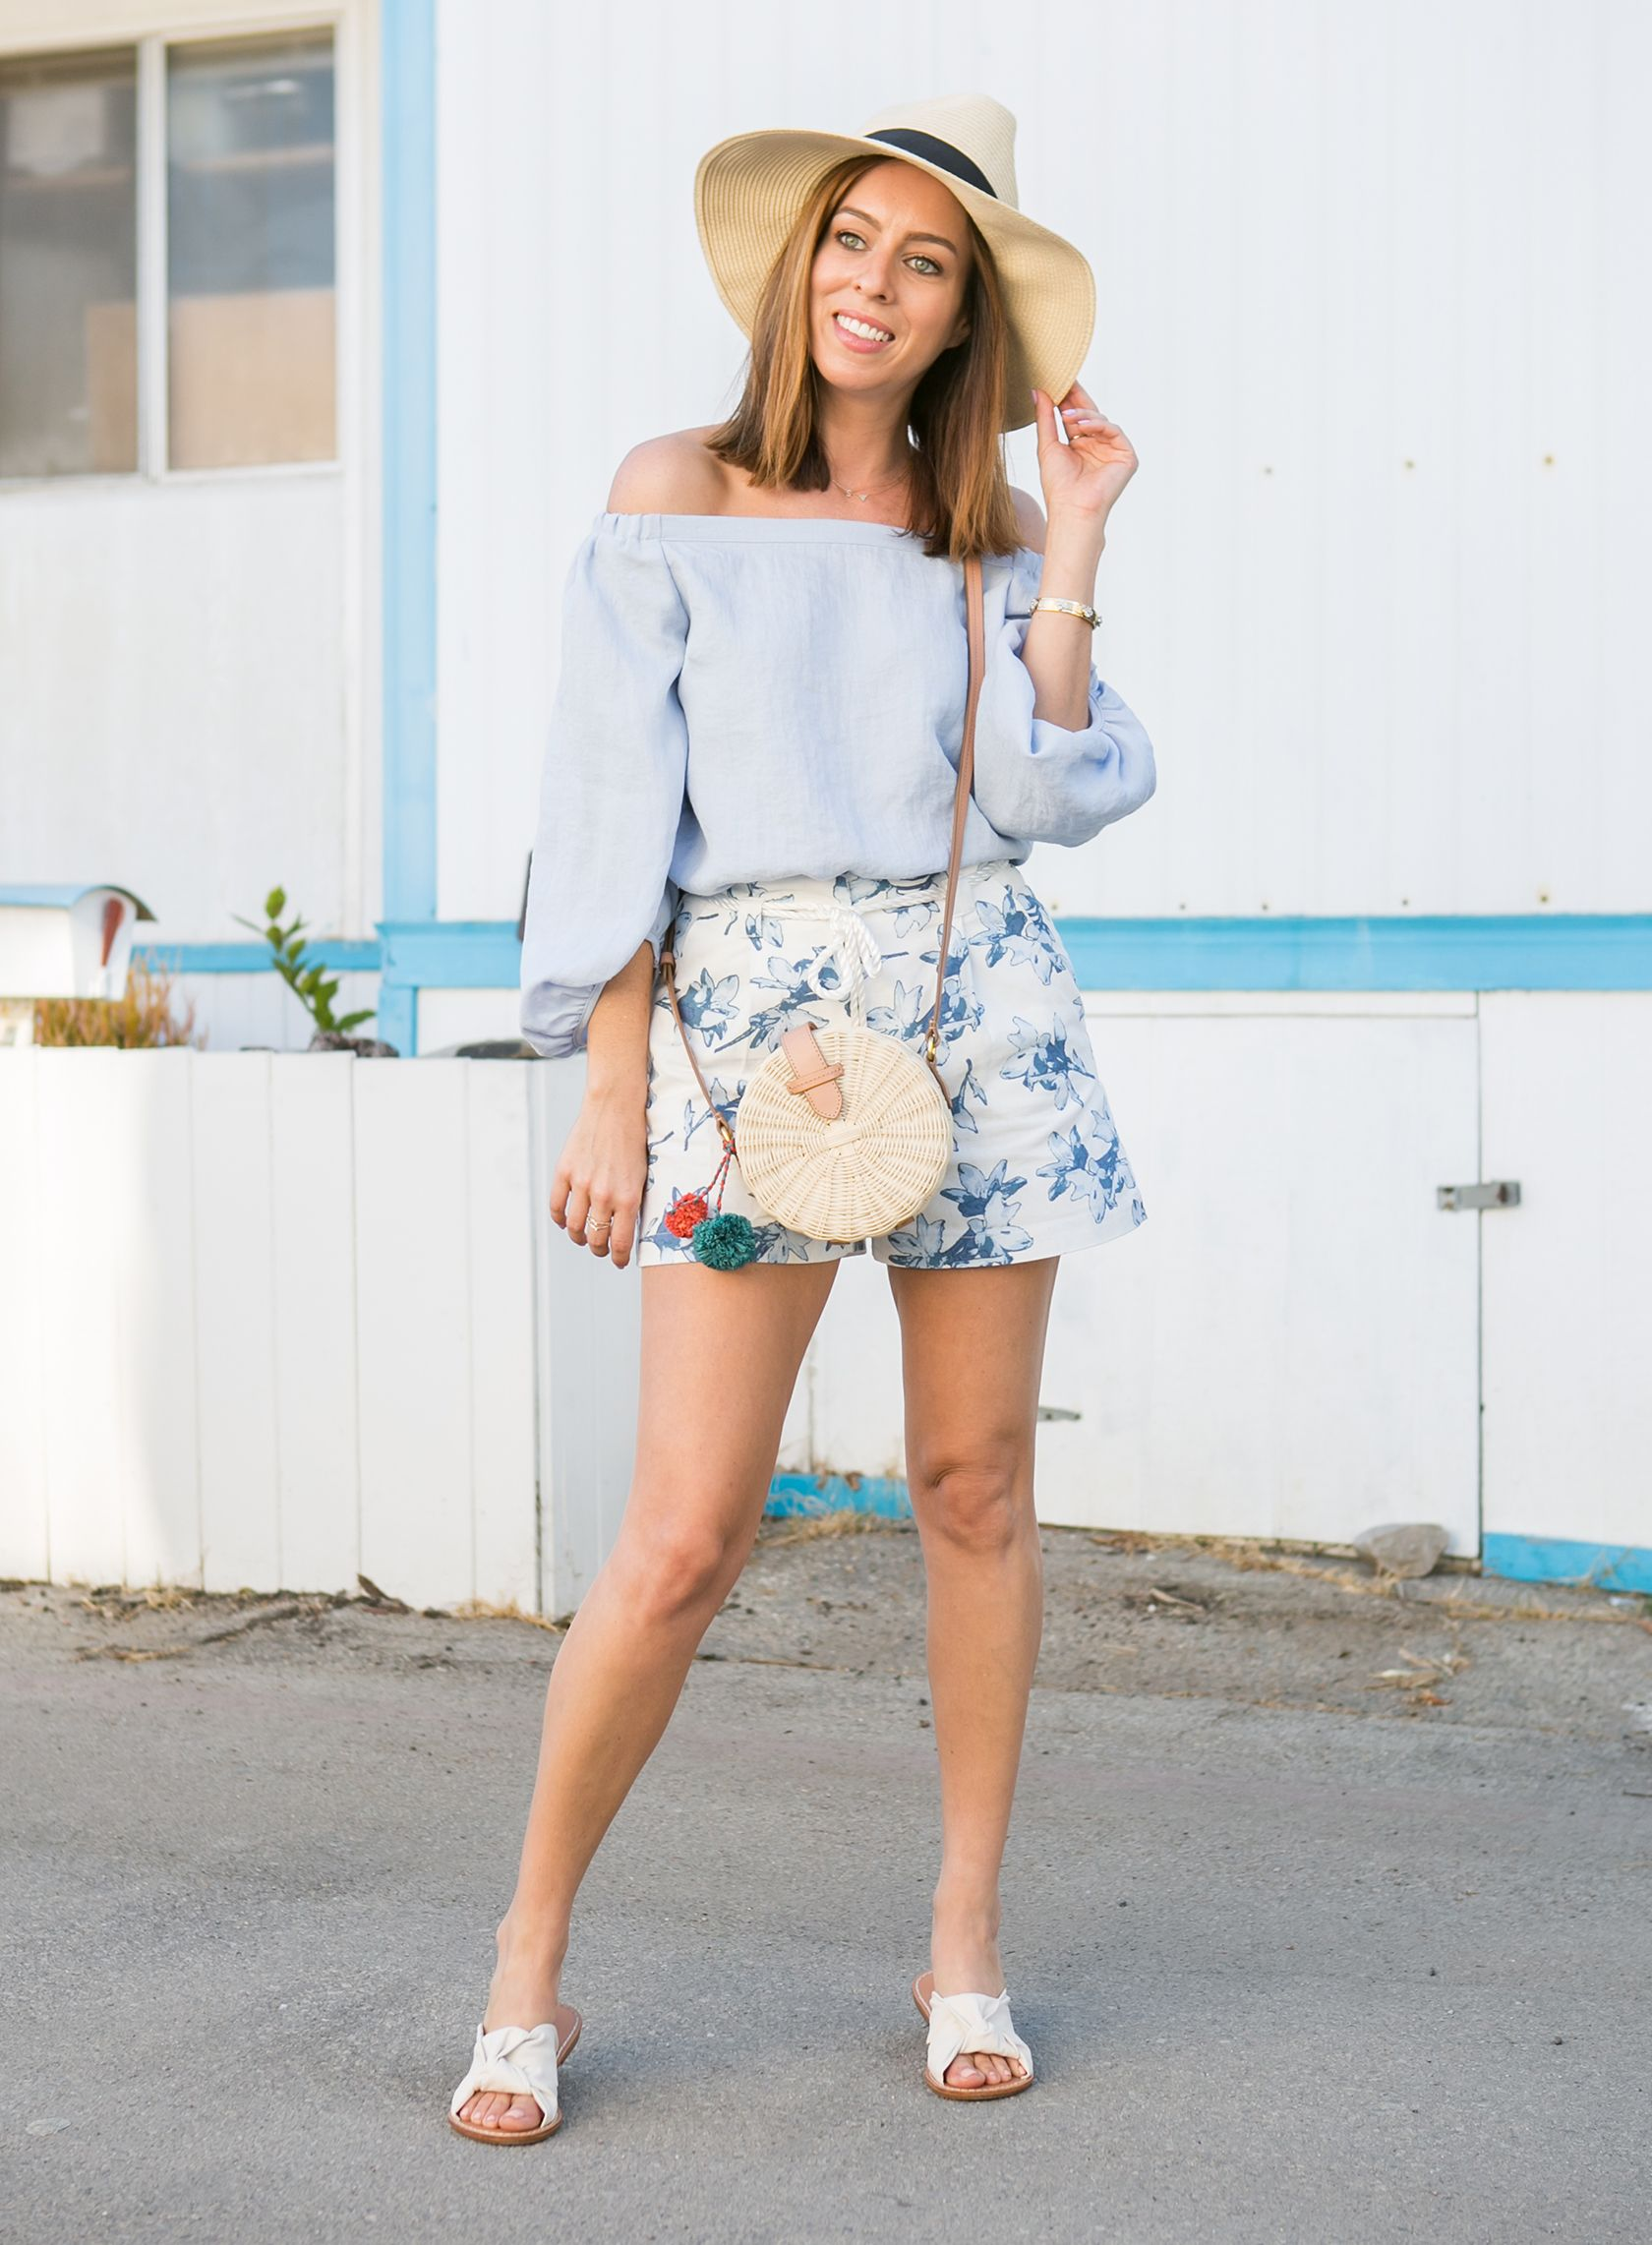 d698bec50ea Sydne Style shows how to wear floral shorts for summer vacation outfit ideas